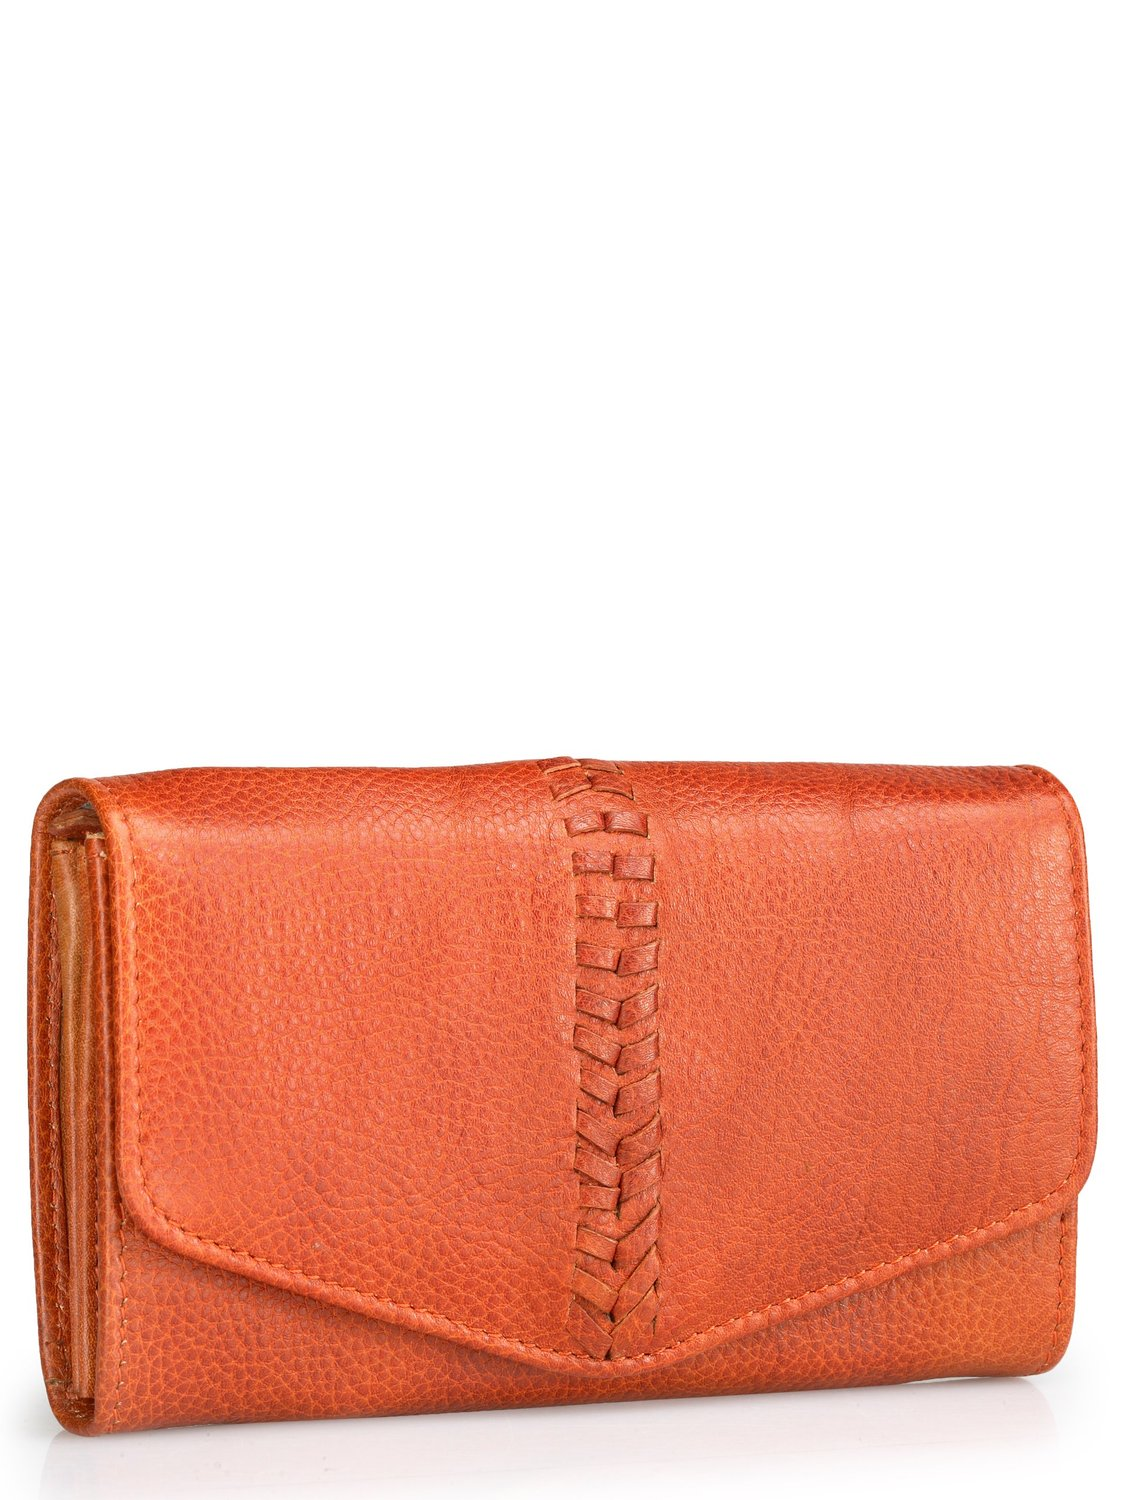 Phive Rivers Wallet (Tan)